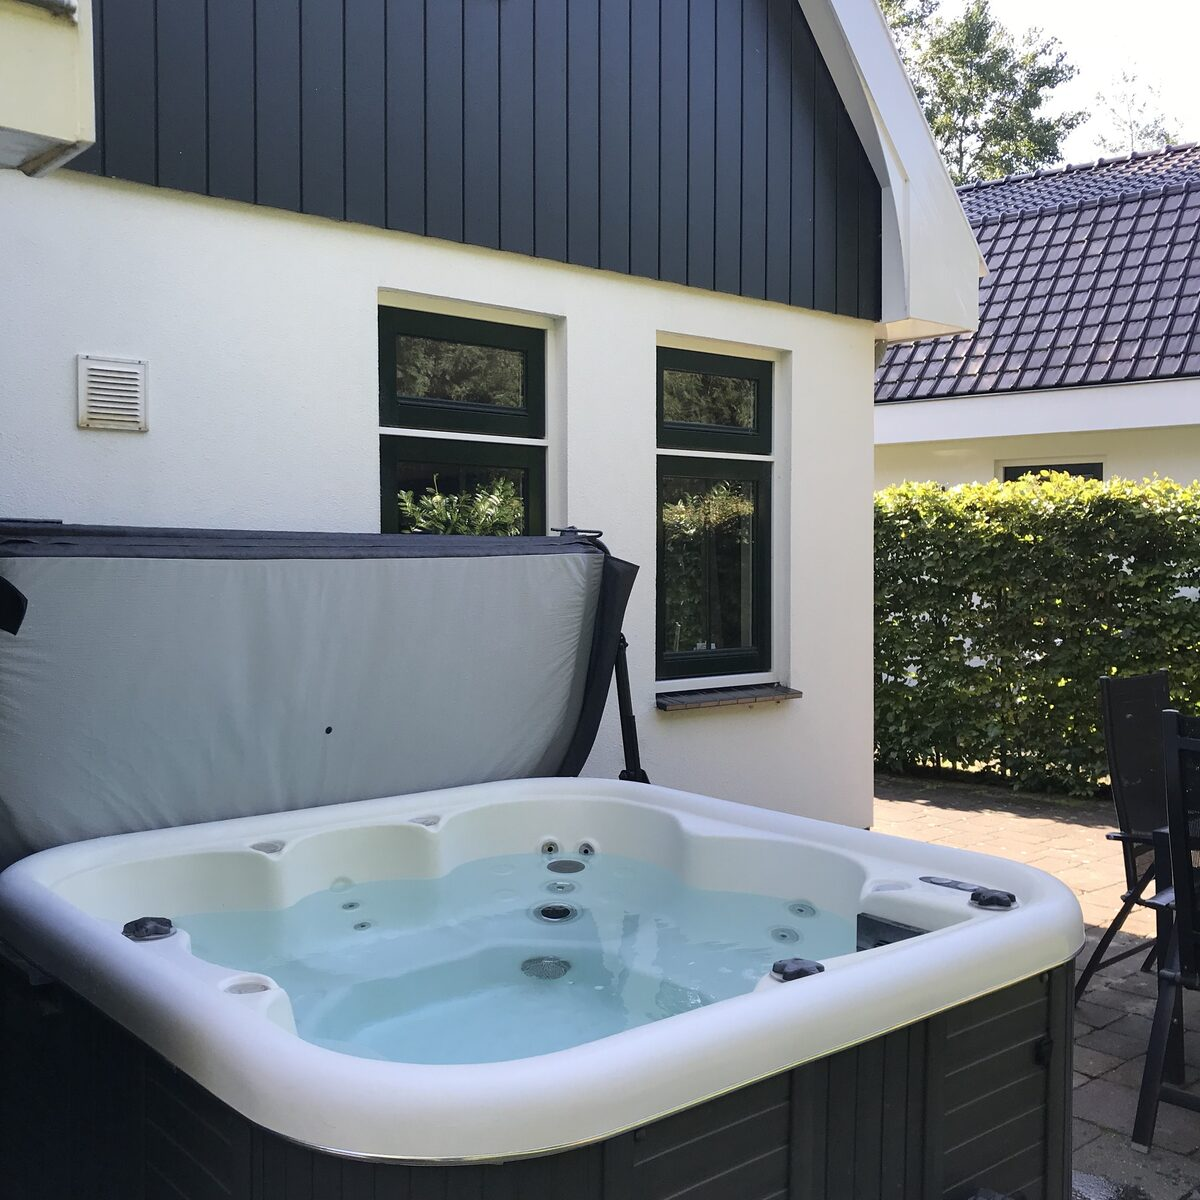 Koningshoeve Jacuzzi 4 people